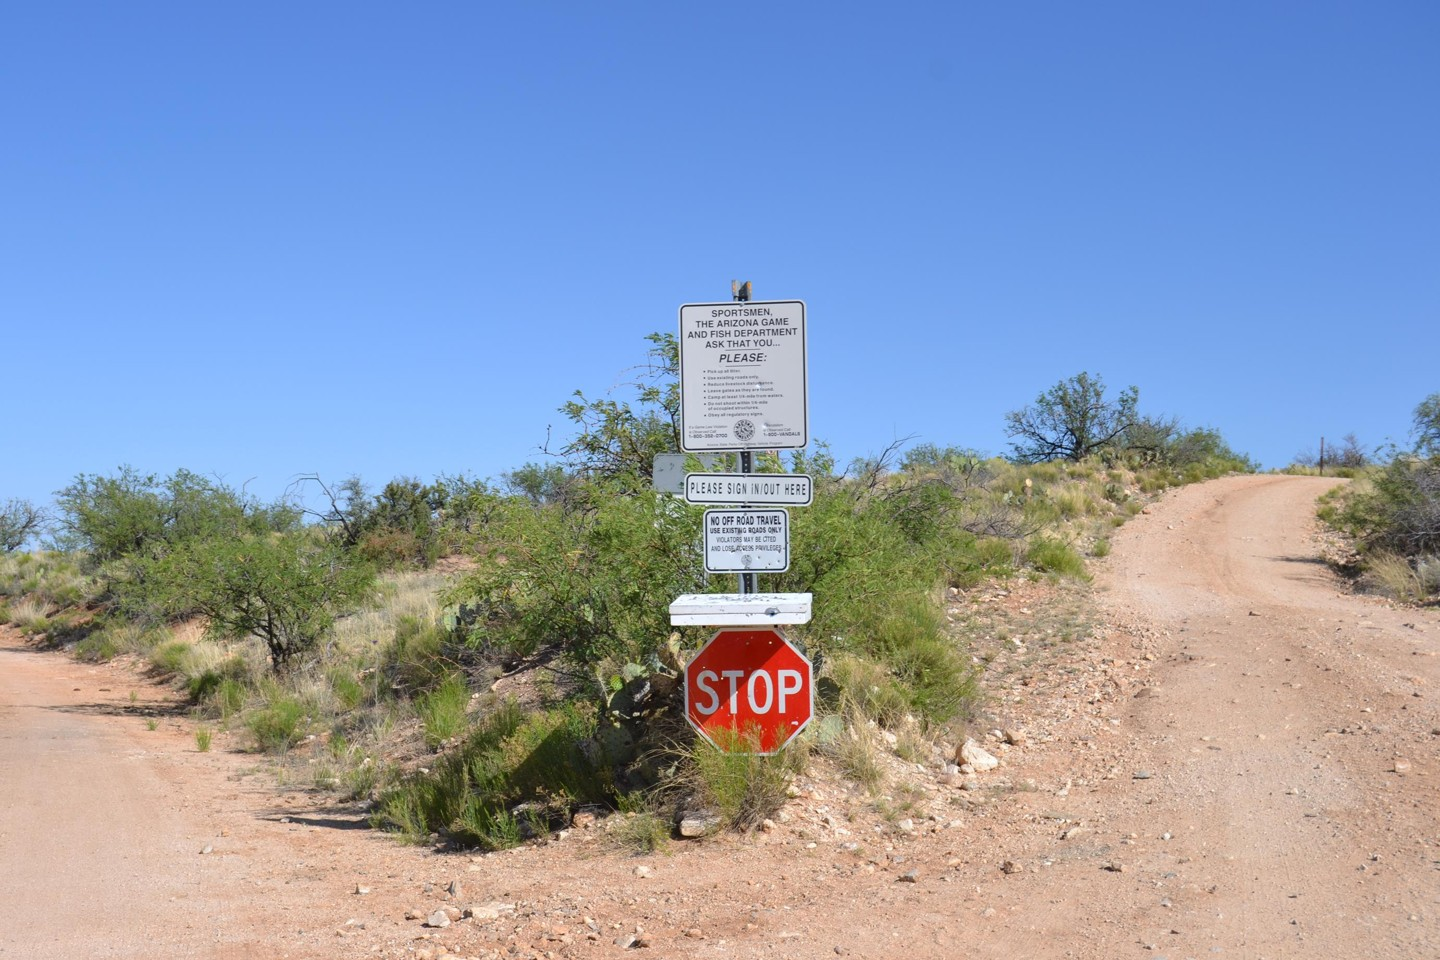 Redington Pass - Waypoint 40: Large Trail Intersection Unknown Road# to BarLY Ranch (Stay Left)